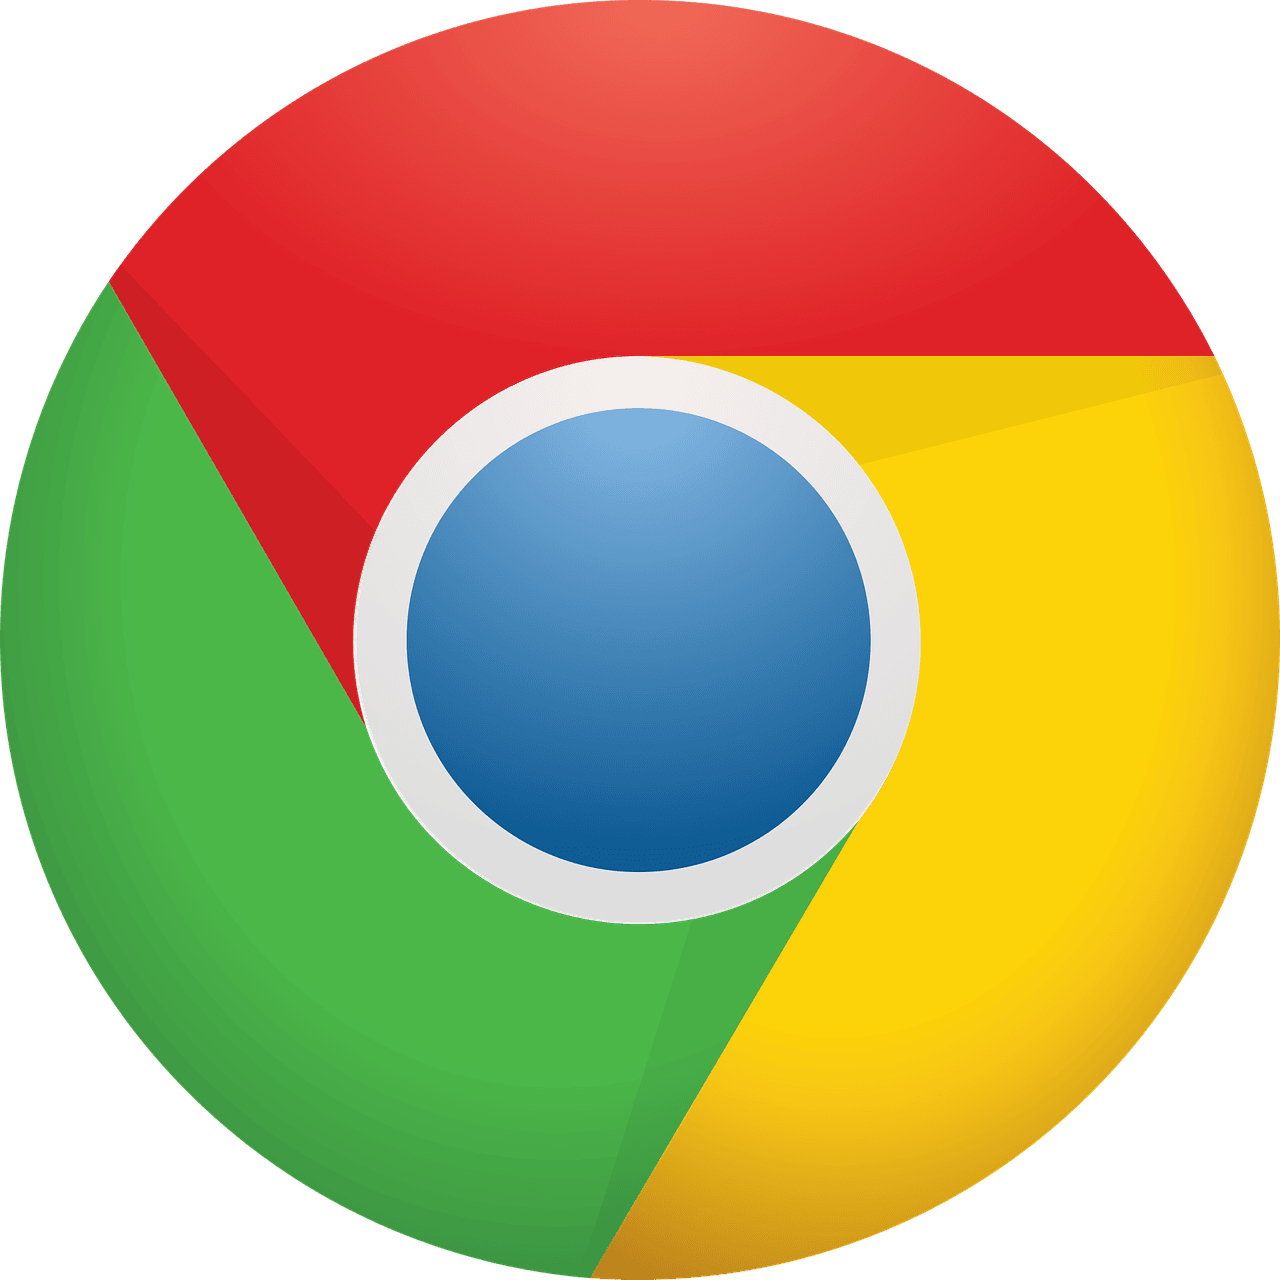 chrome 79 linux